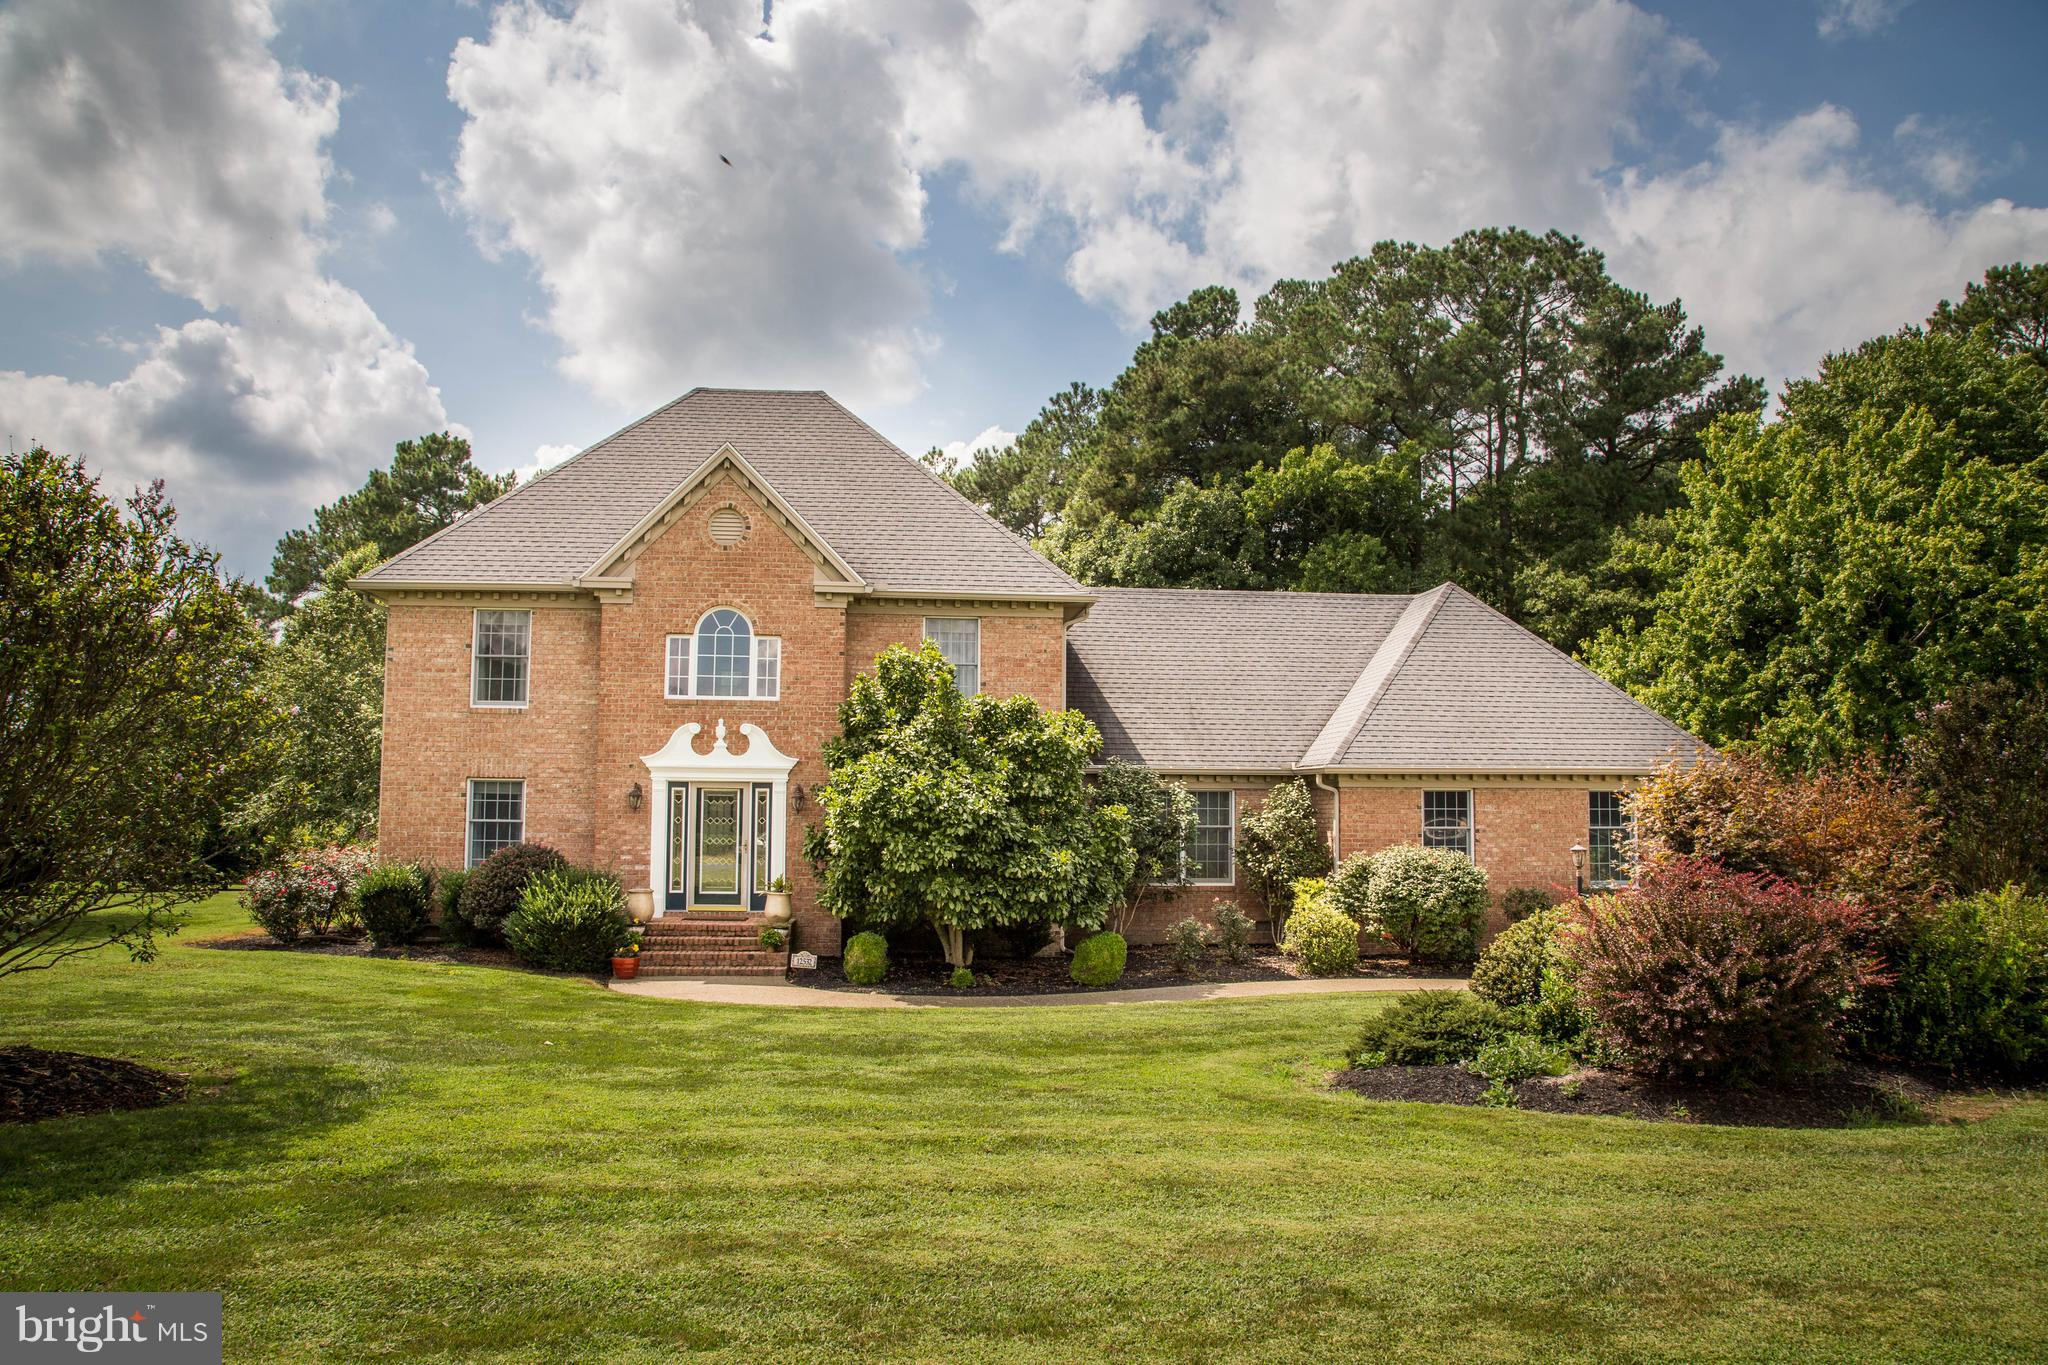 12532 MALLARD LANE, PRINCESS ANNE, MD 21853